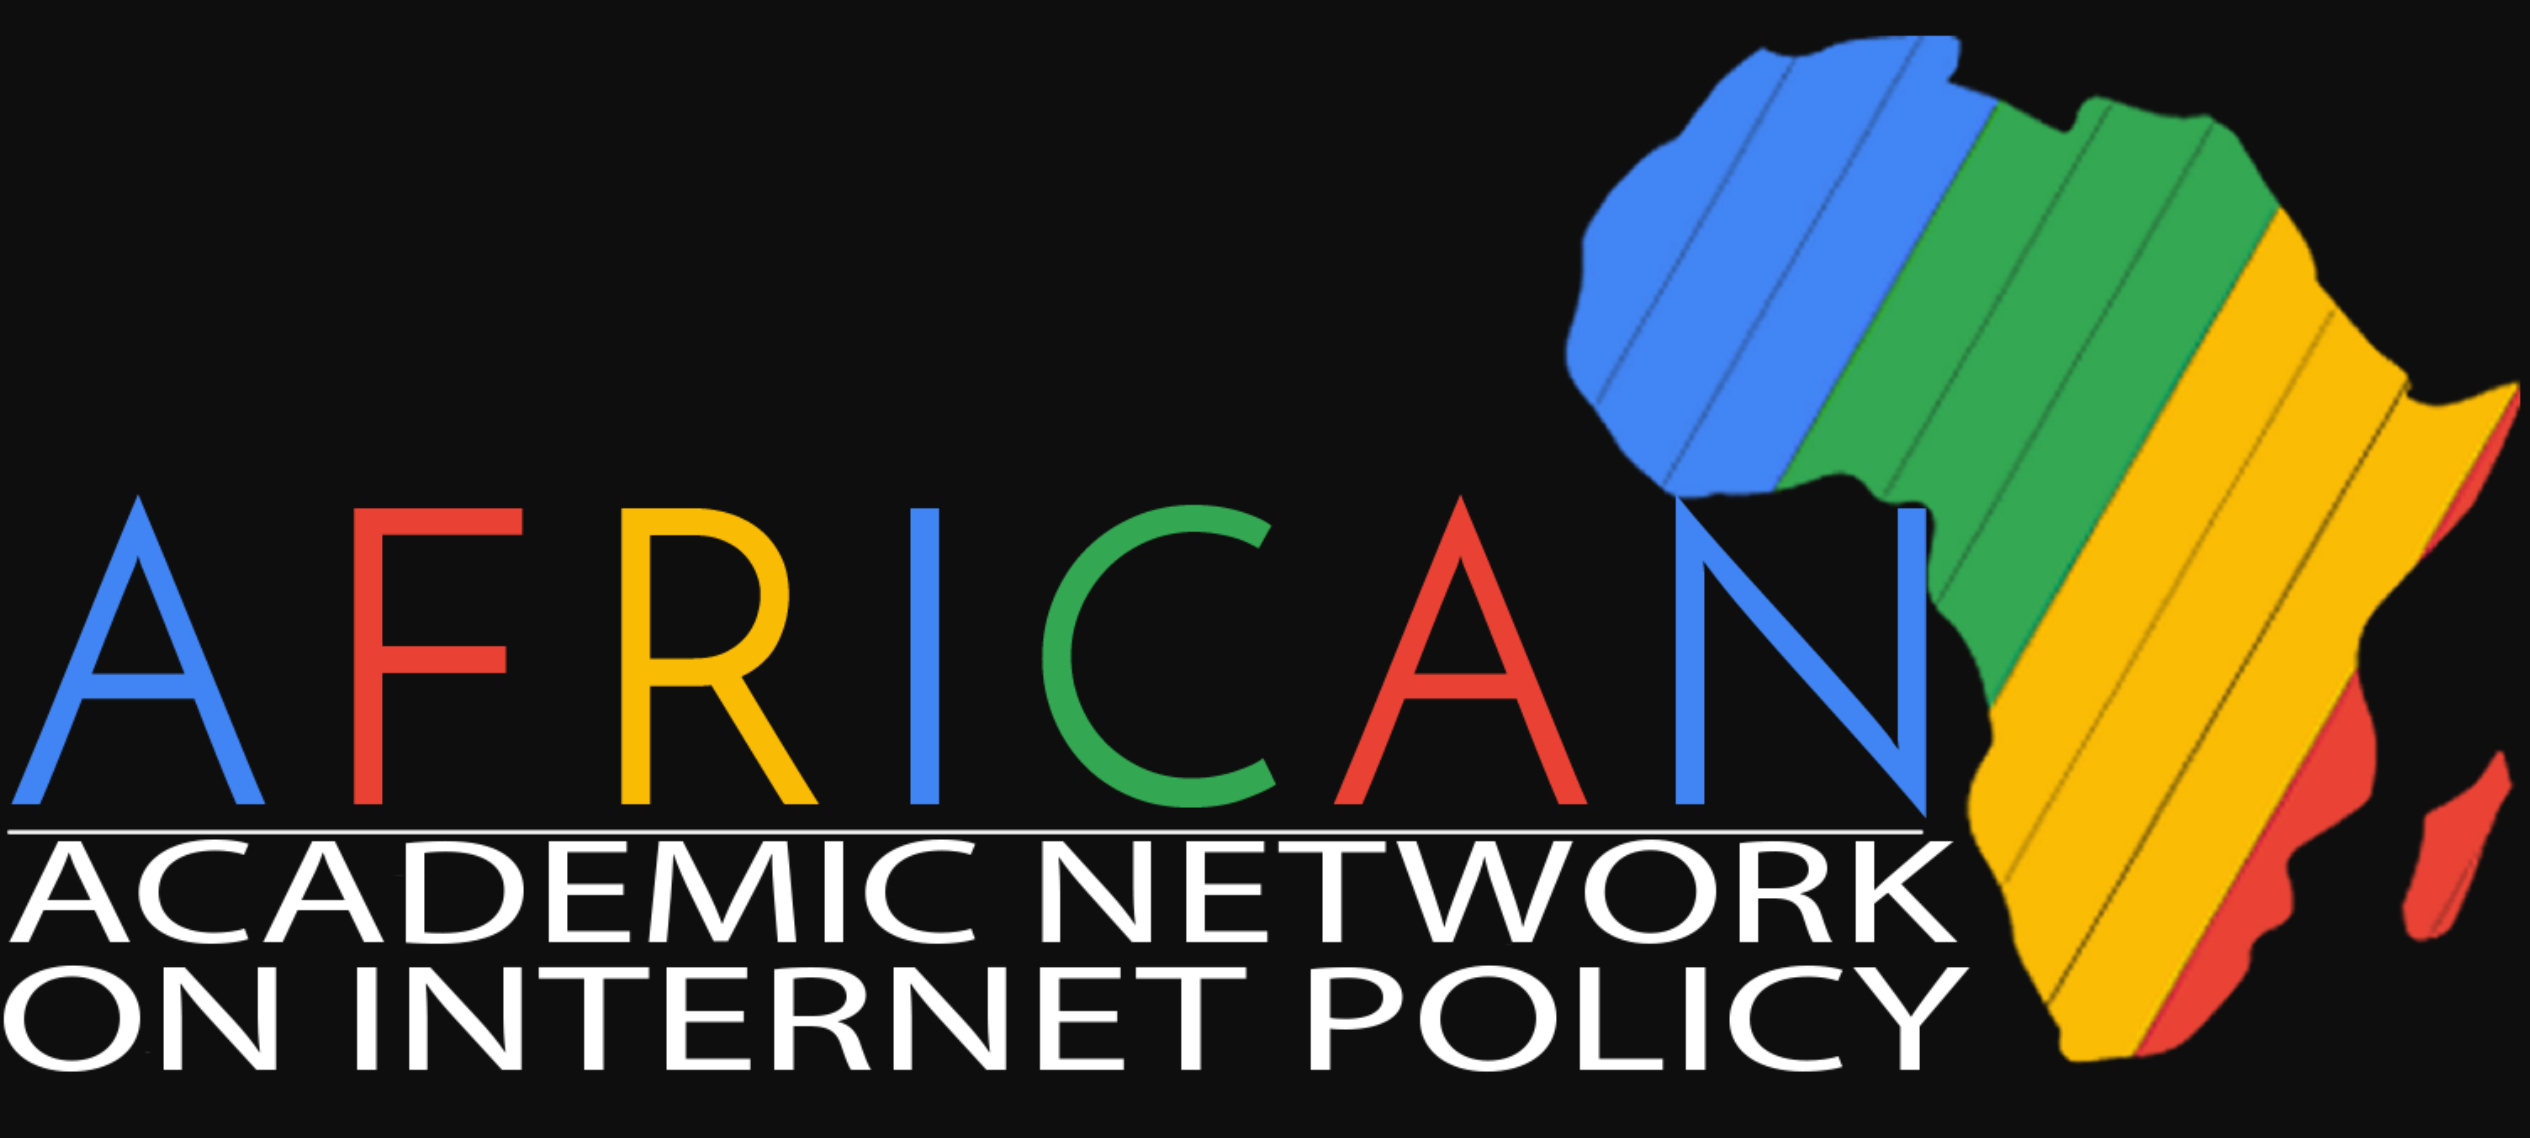 African Academic Network on Internet Policy